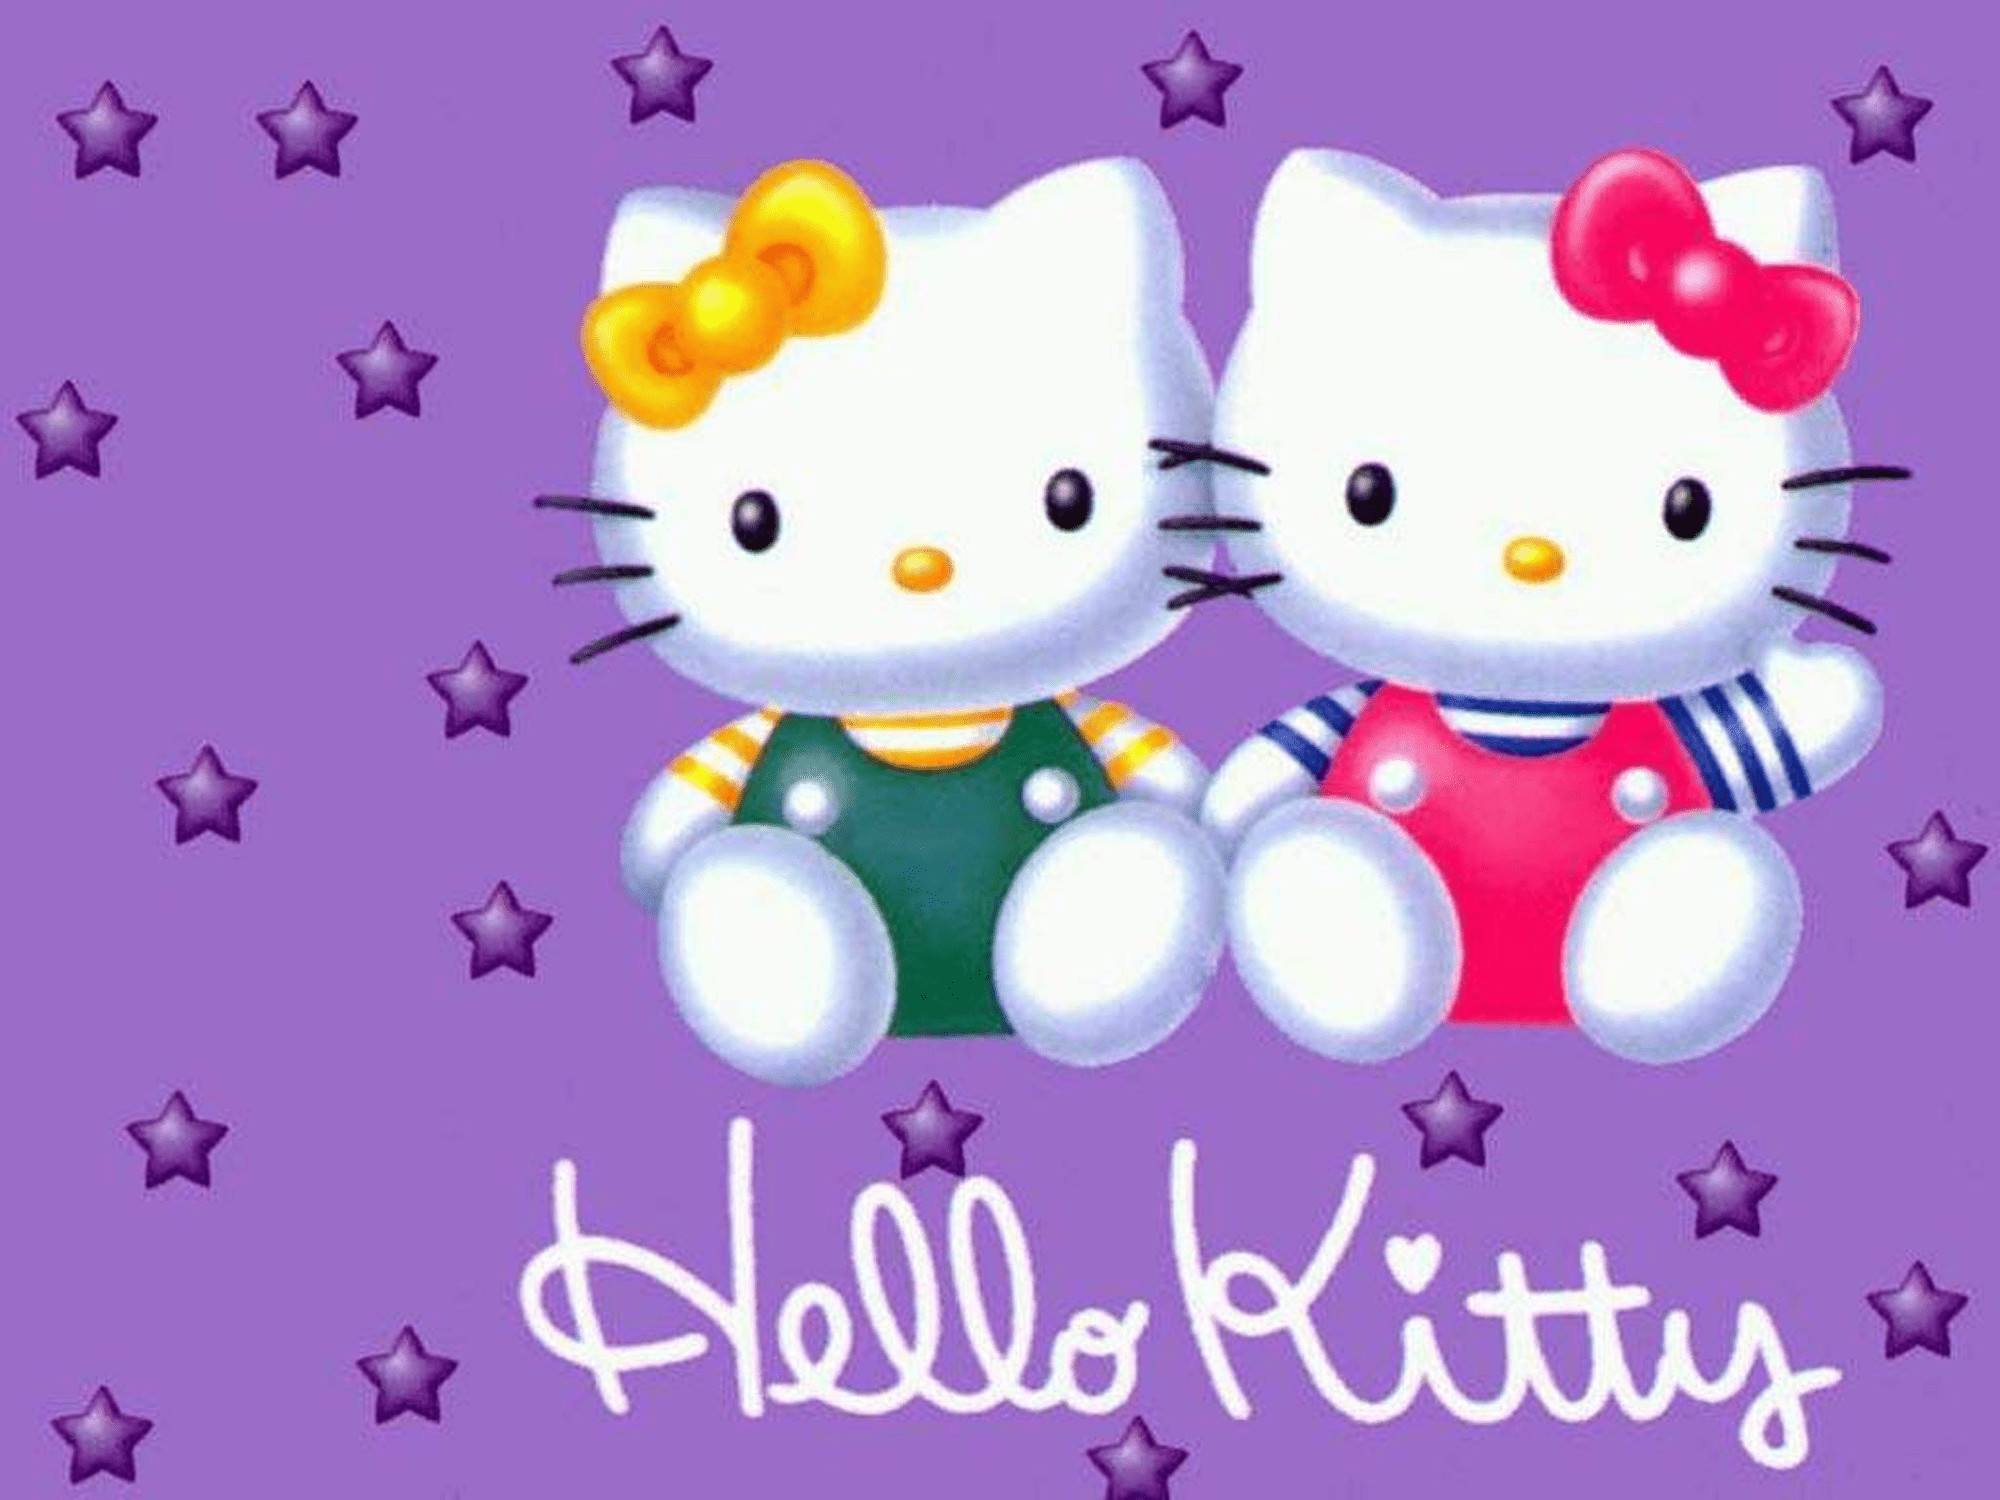 2000x1500 Screenshot of Hello Kitty friends wallpaper on a purple background